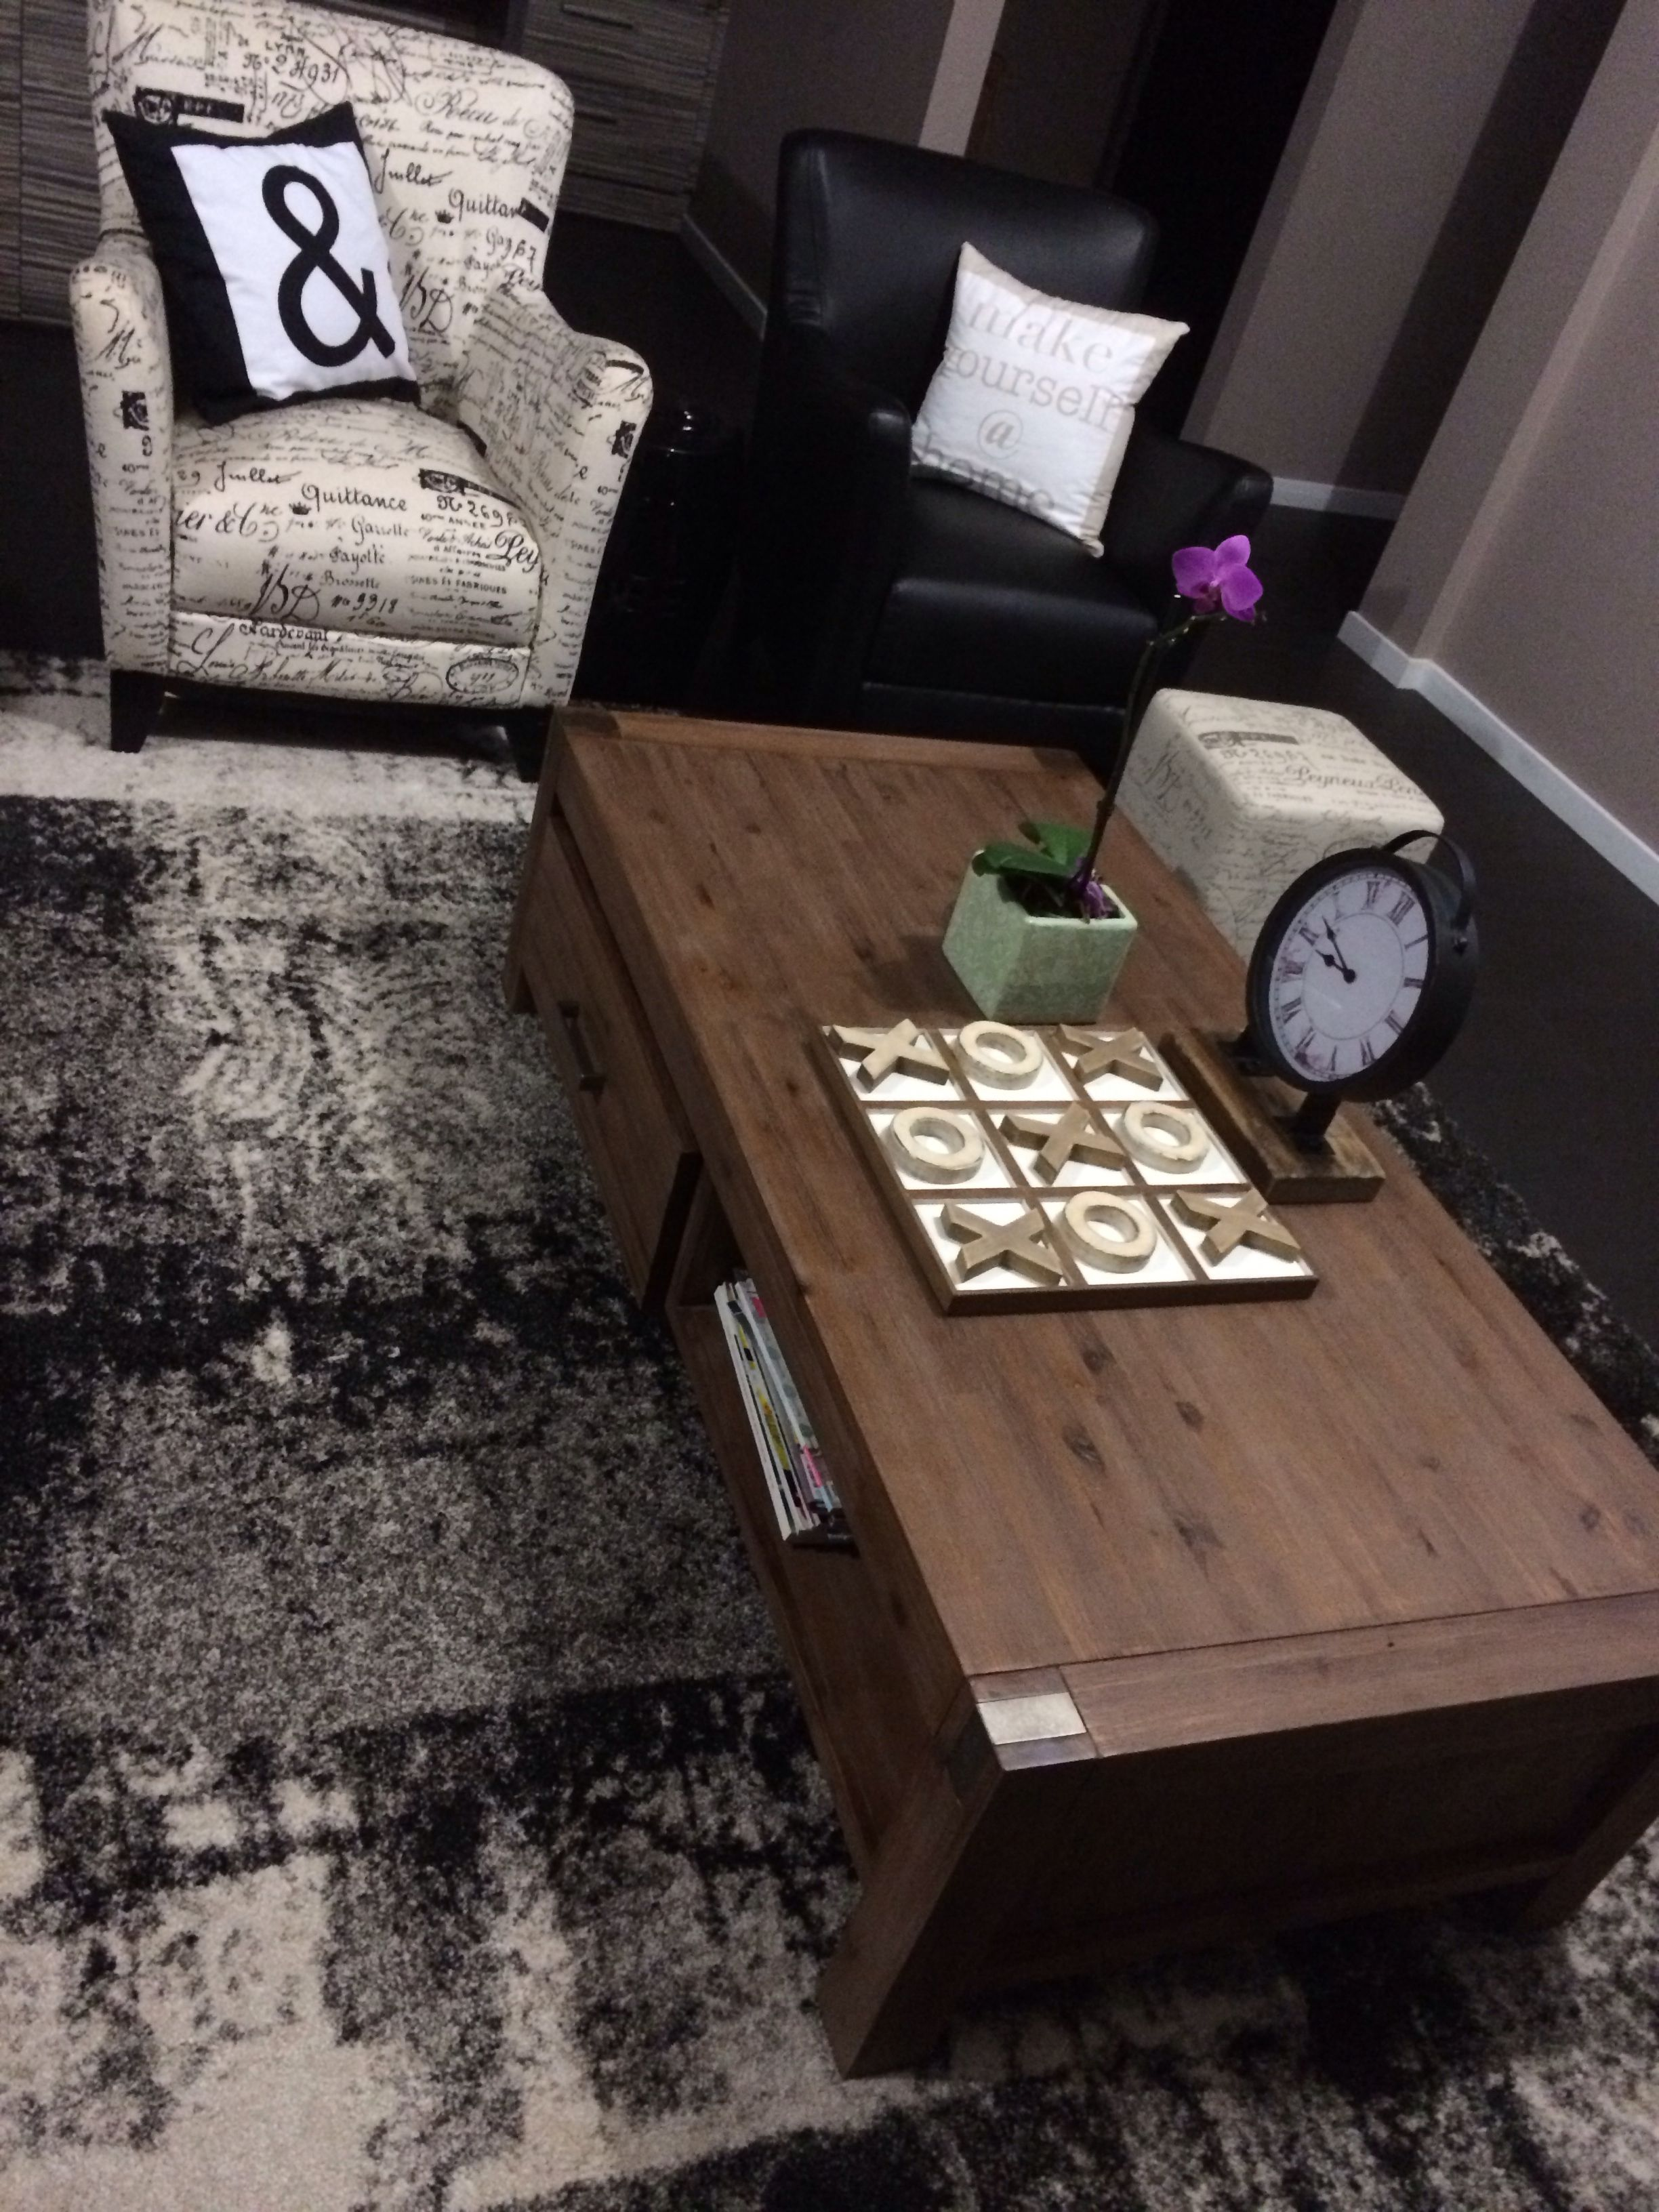 Using accent chairs in home decor • Home • Pinterest